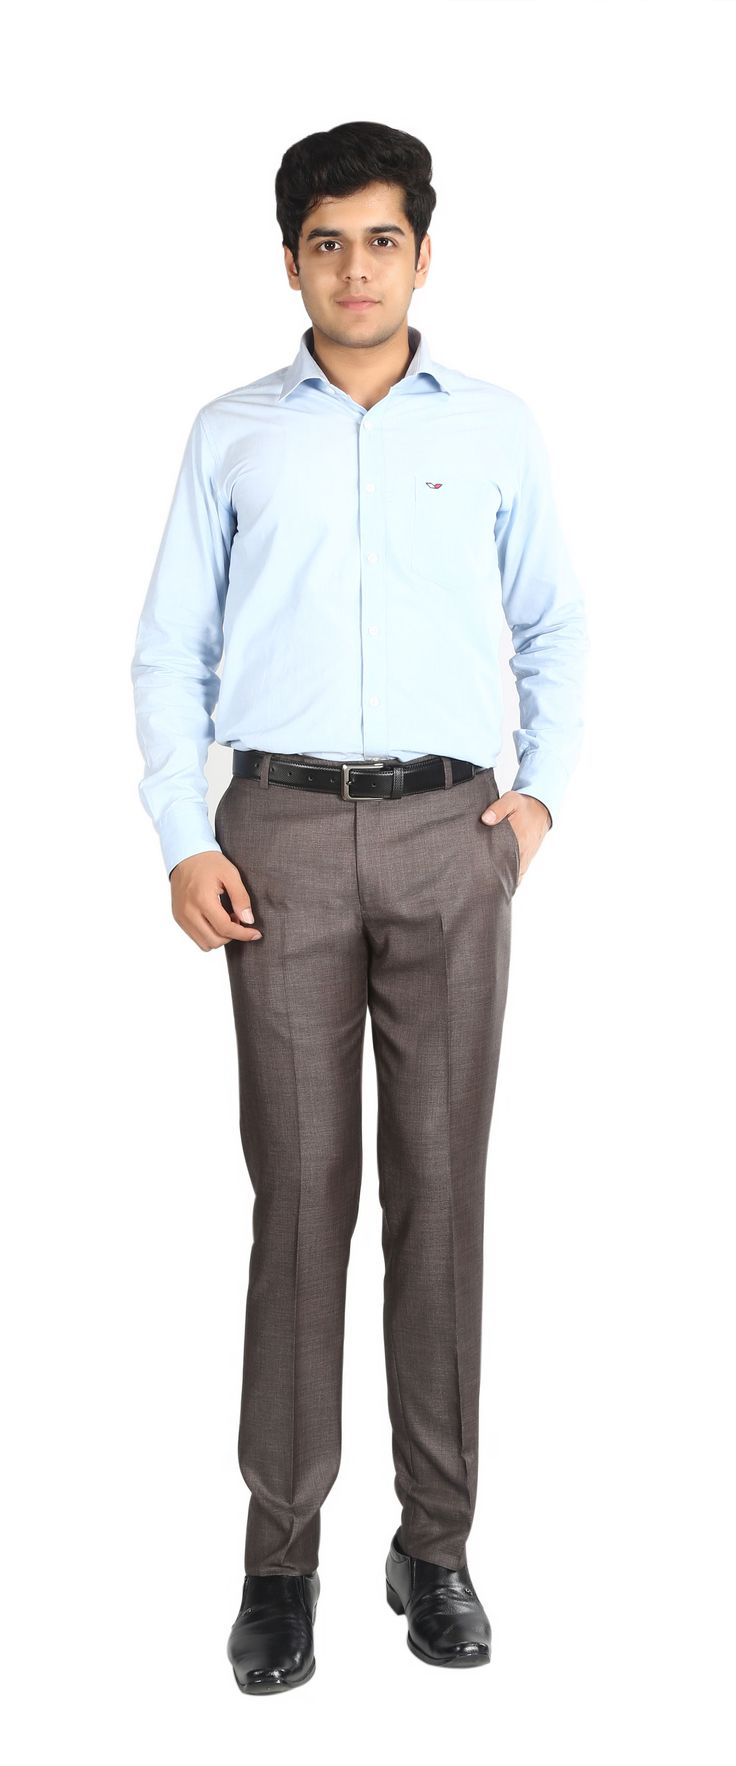 Brand Name= NUMERICS Size= 30-38 Shade= Brown Fit= Slim Fit Fabric= POLYSTER VISCOSE Price= 1260/- Discount= 40% Now Price= 756/-